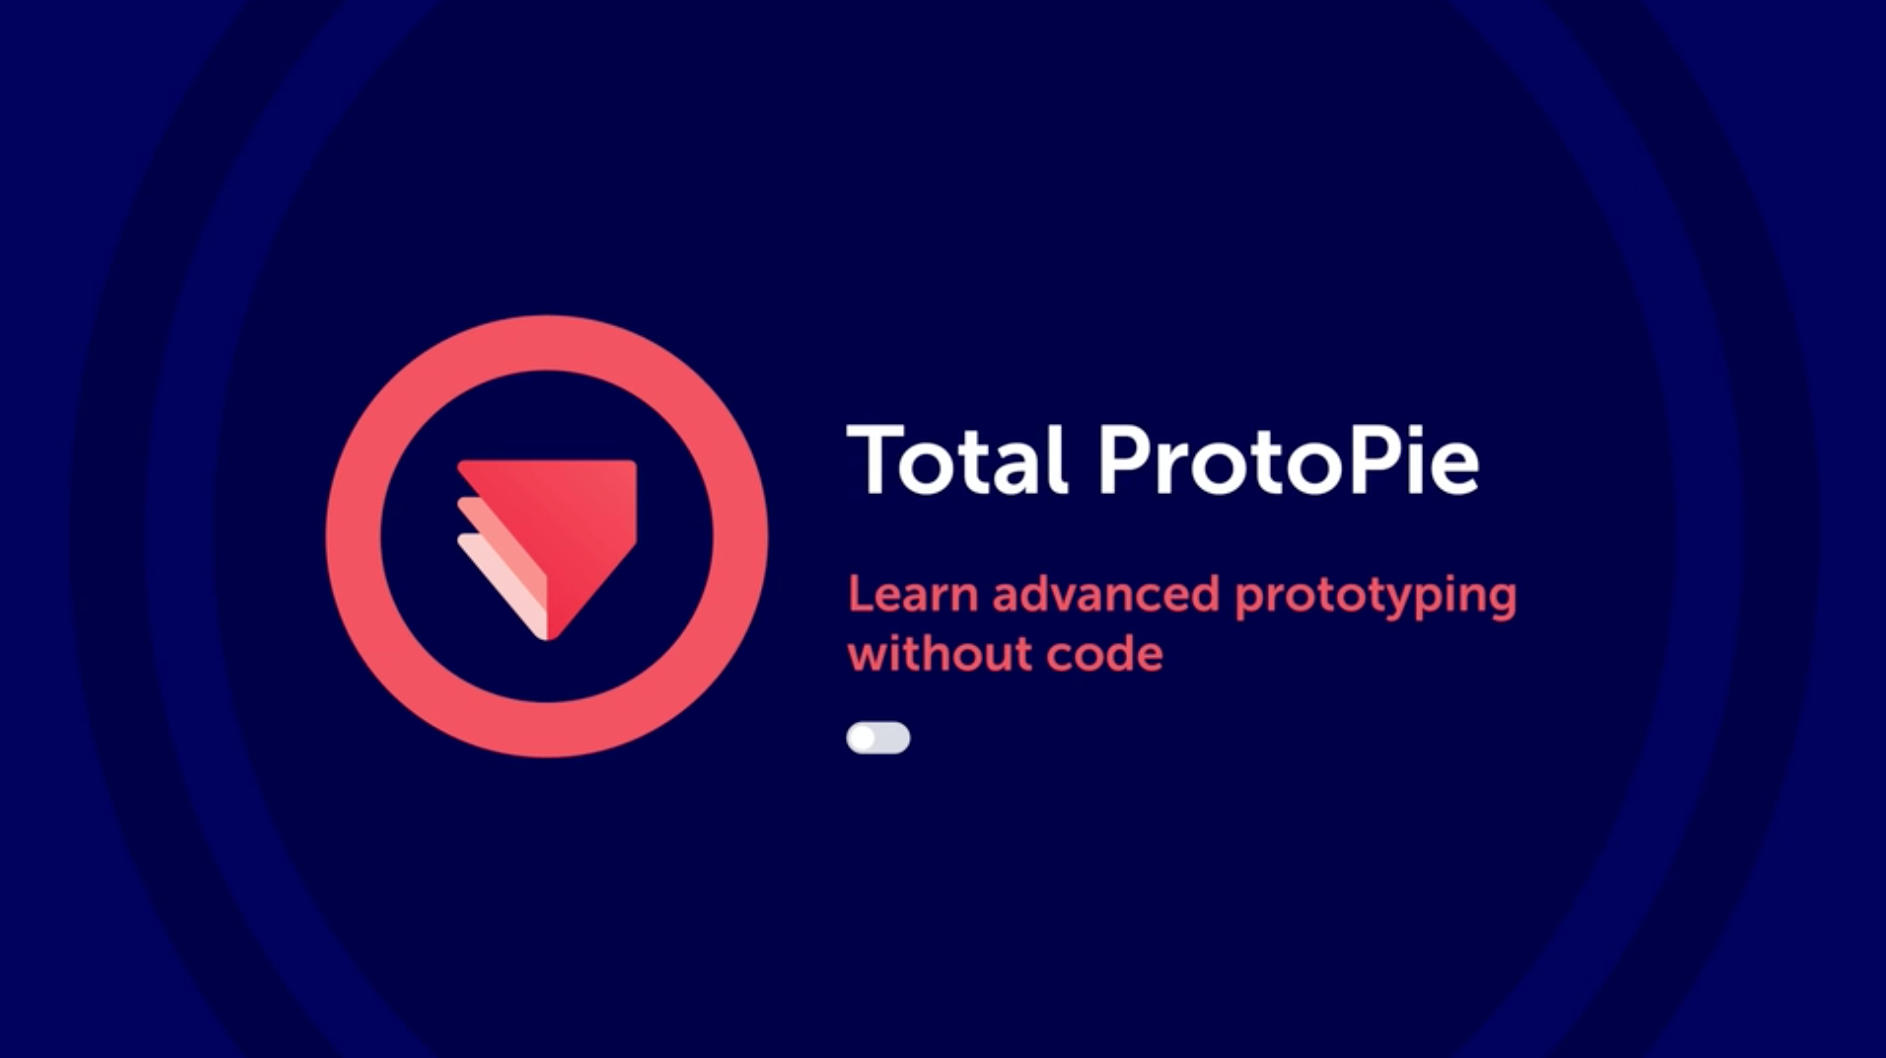 Total ProtoPie: learn advanced prototyping without code.